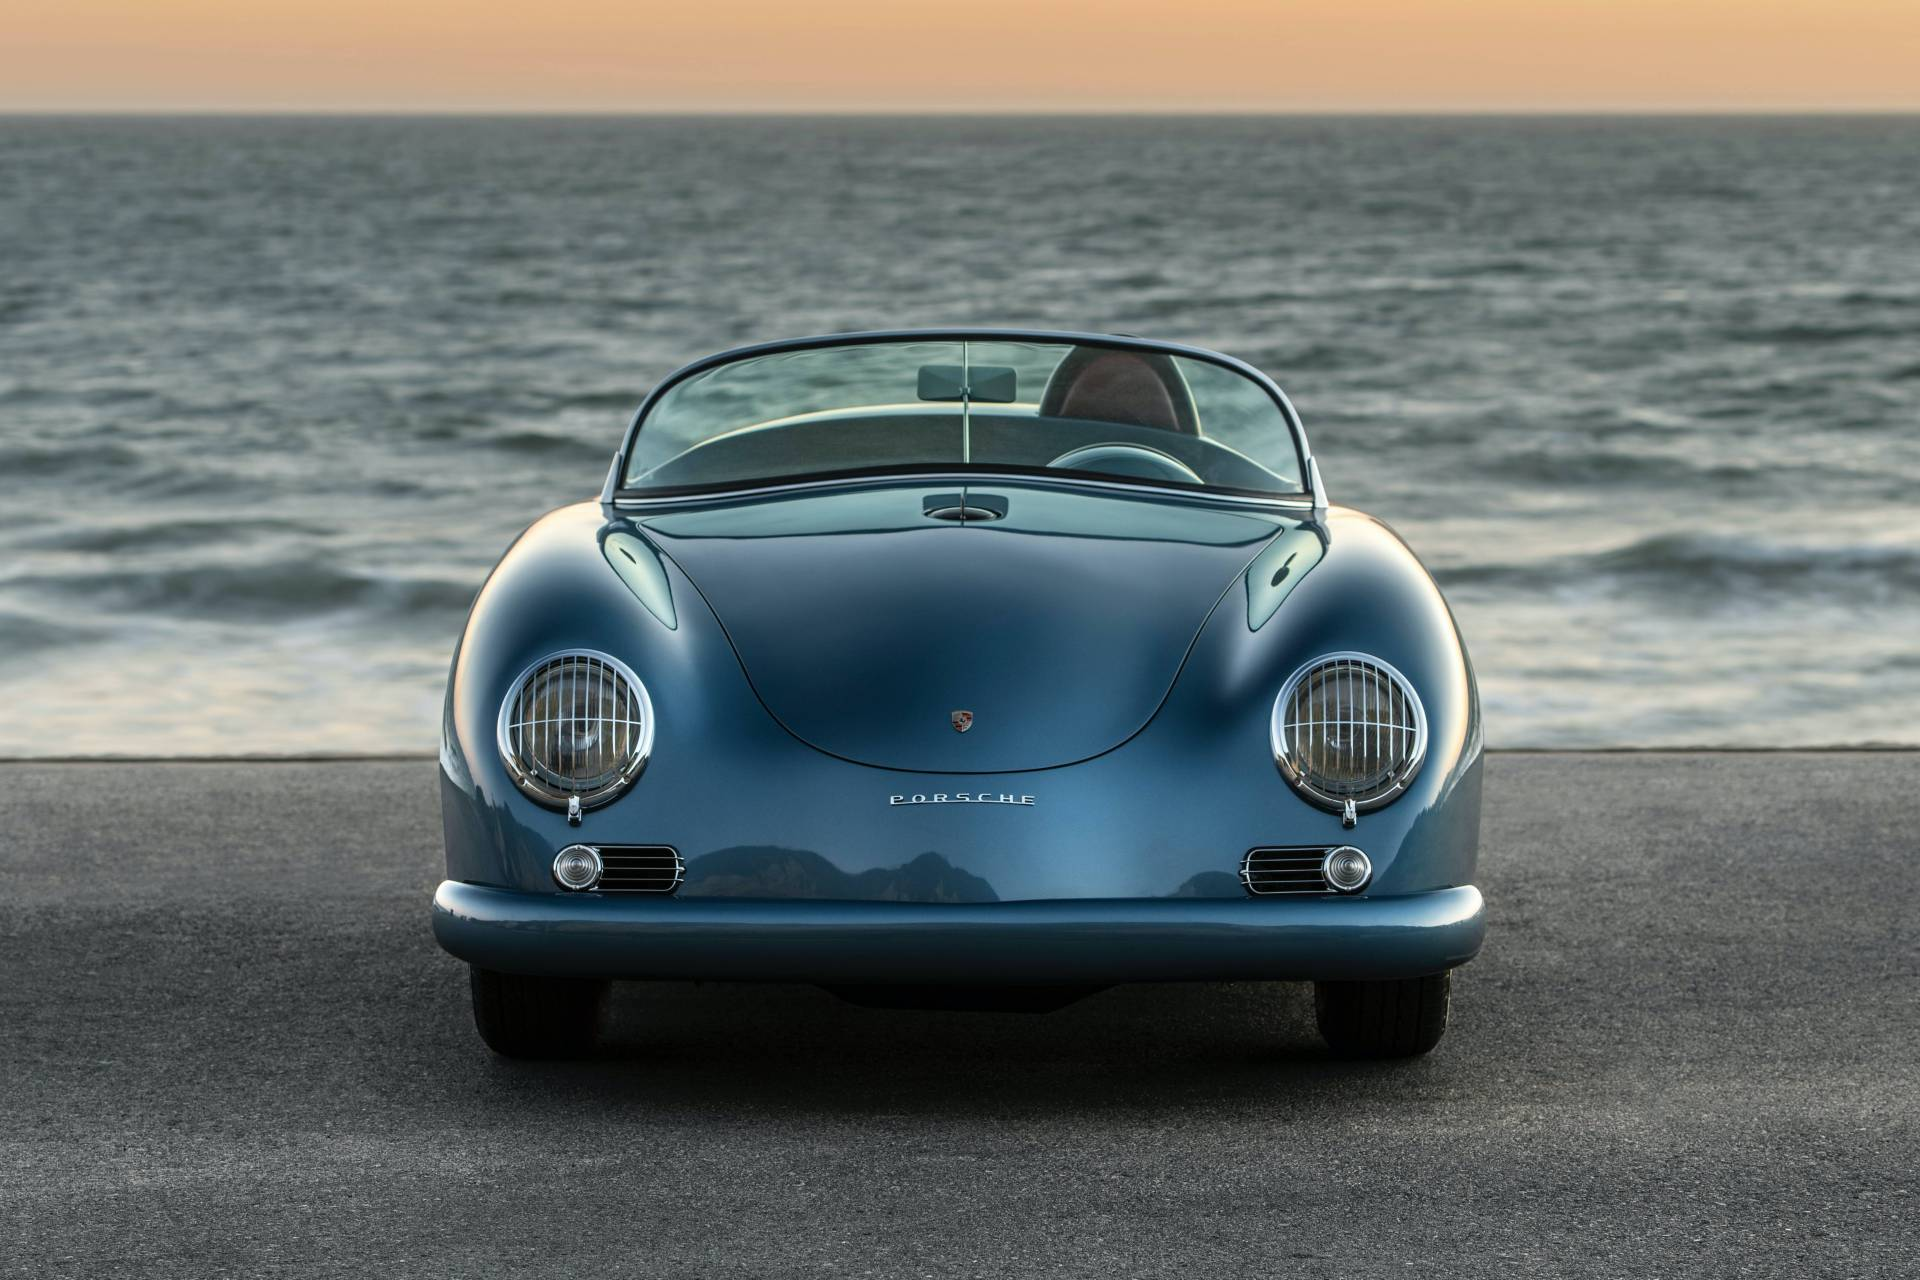 Porsche-356-Speedster-1959-Aquamarine-Transitional-By-Emory-Motorsport-9